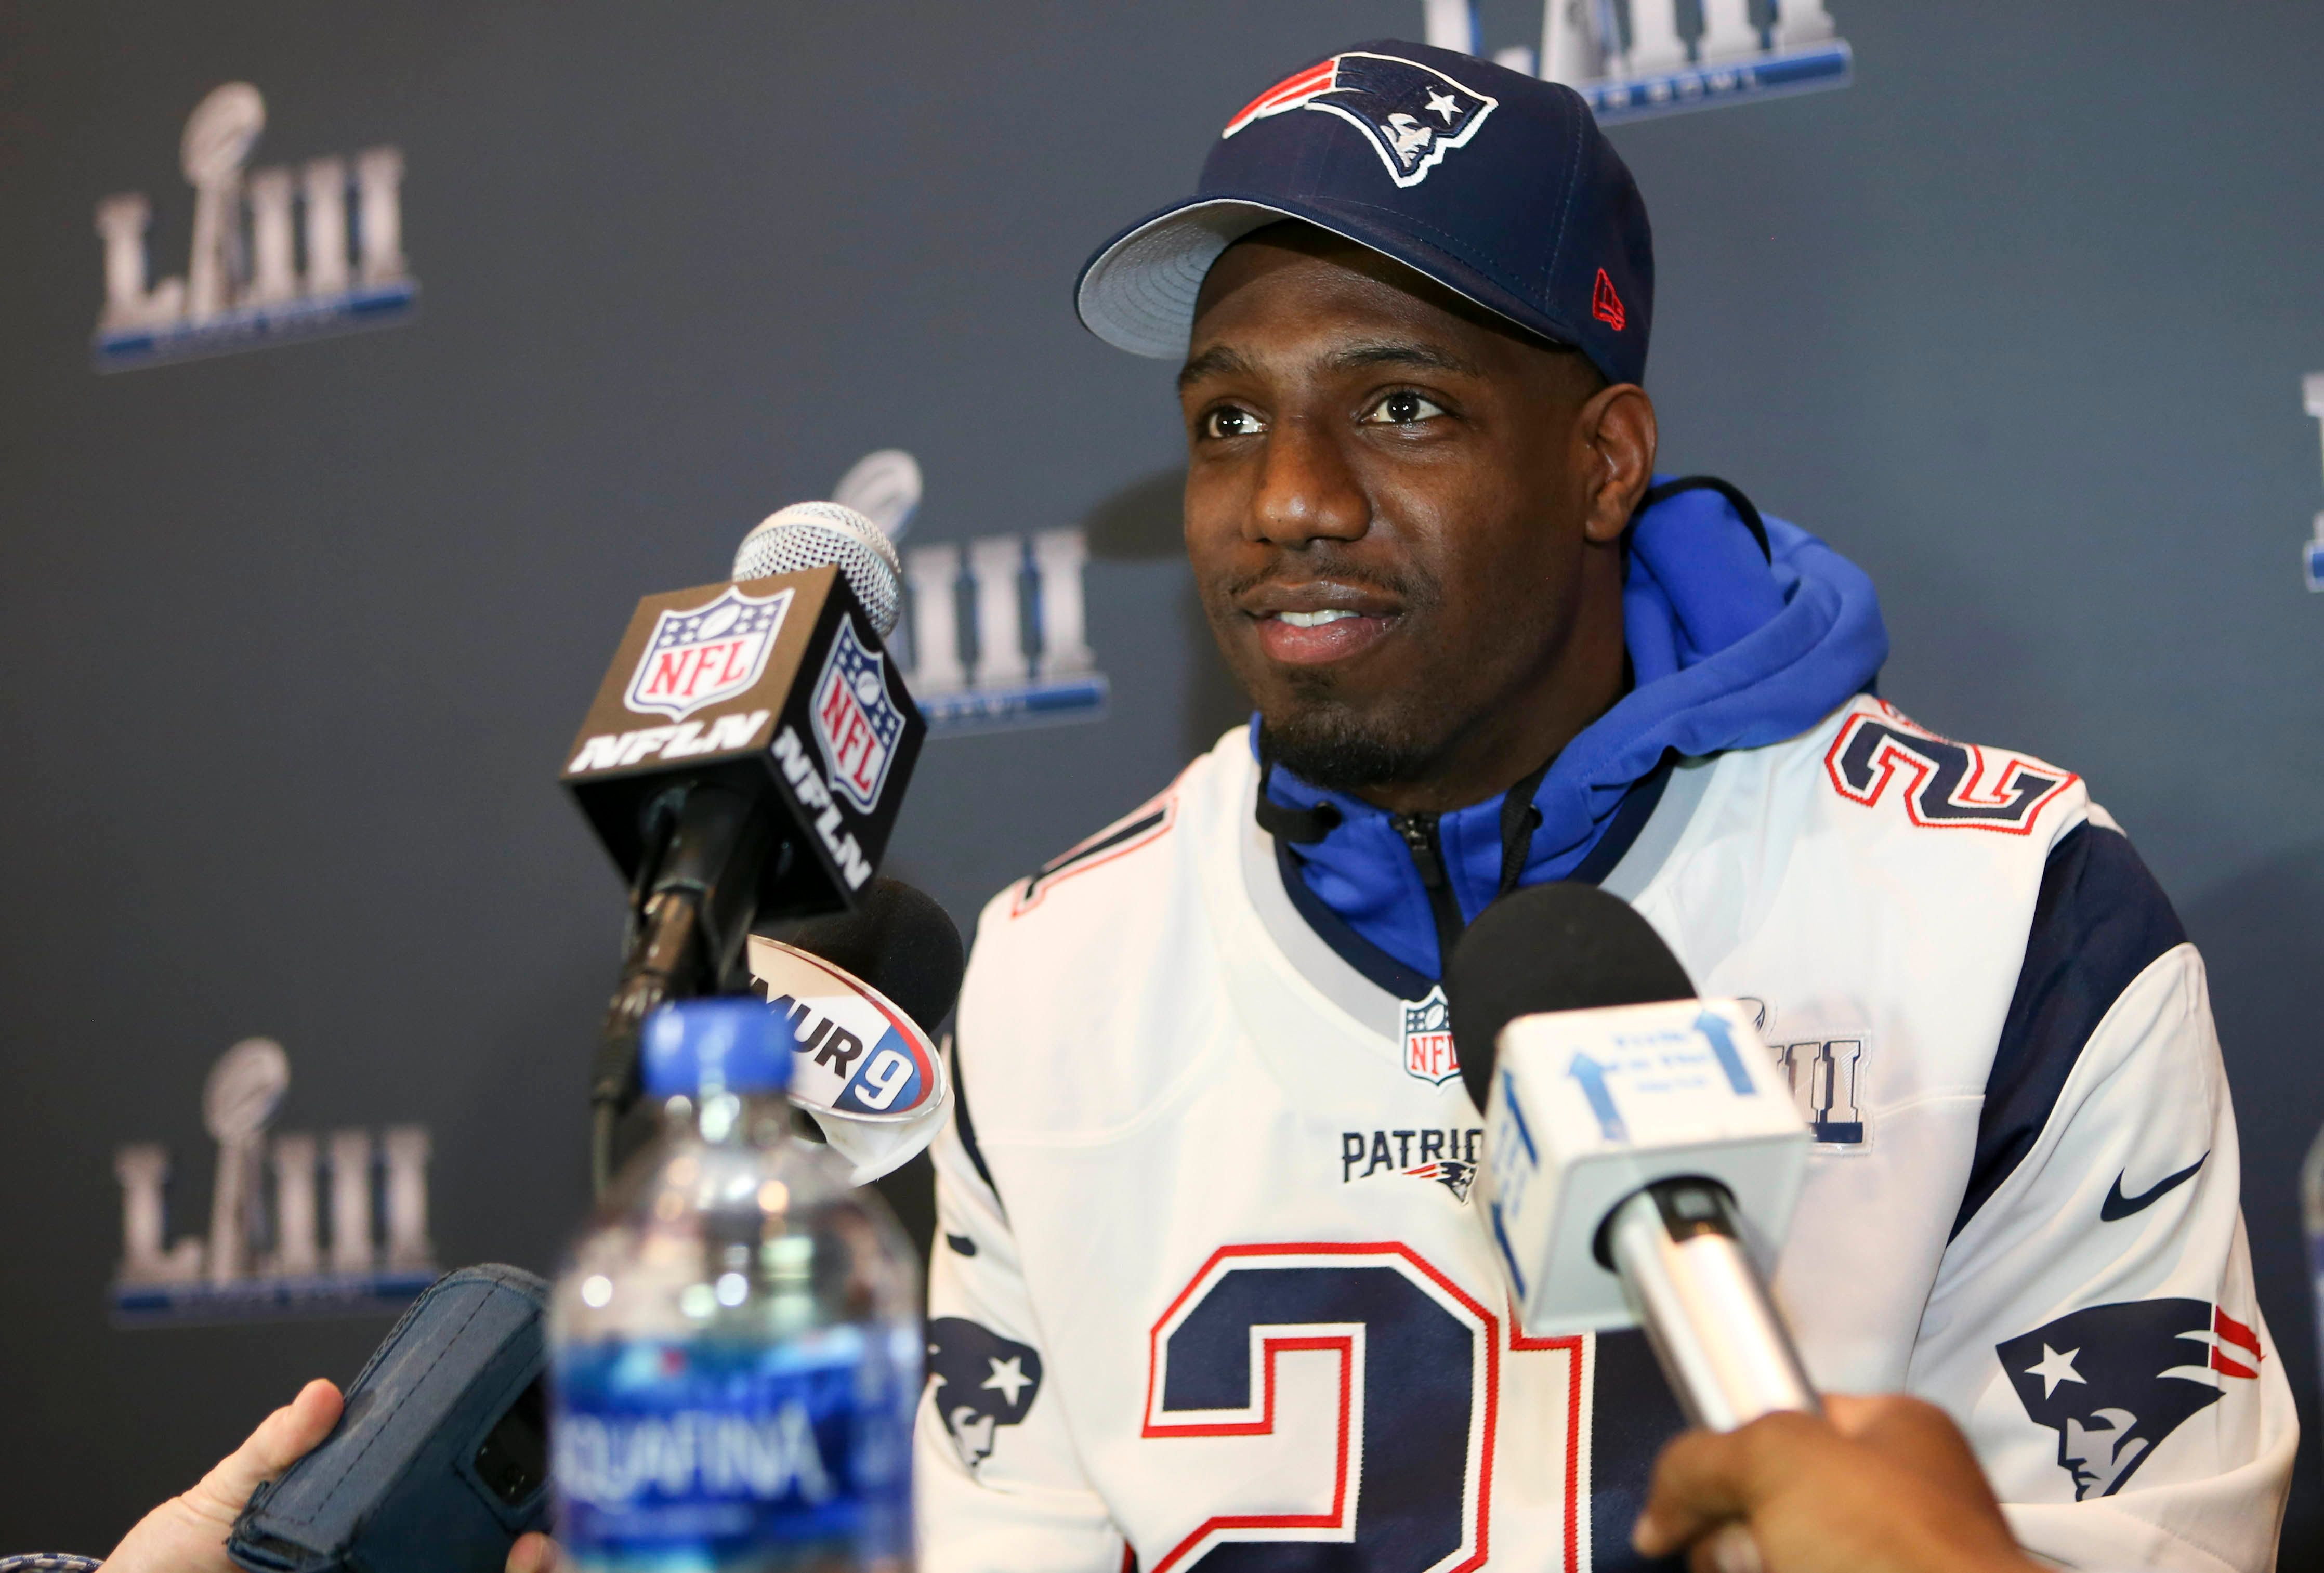 New England Patriots strong safety Duron Harmon addresses the media at a press conference for Super Bowl LIII on Jan. 31.